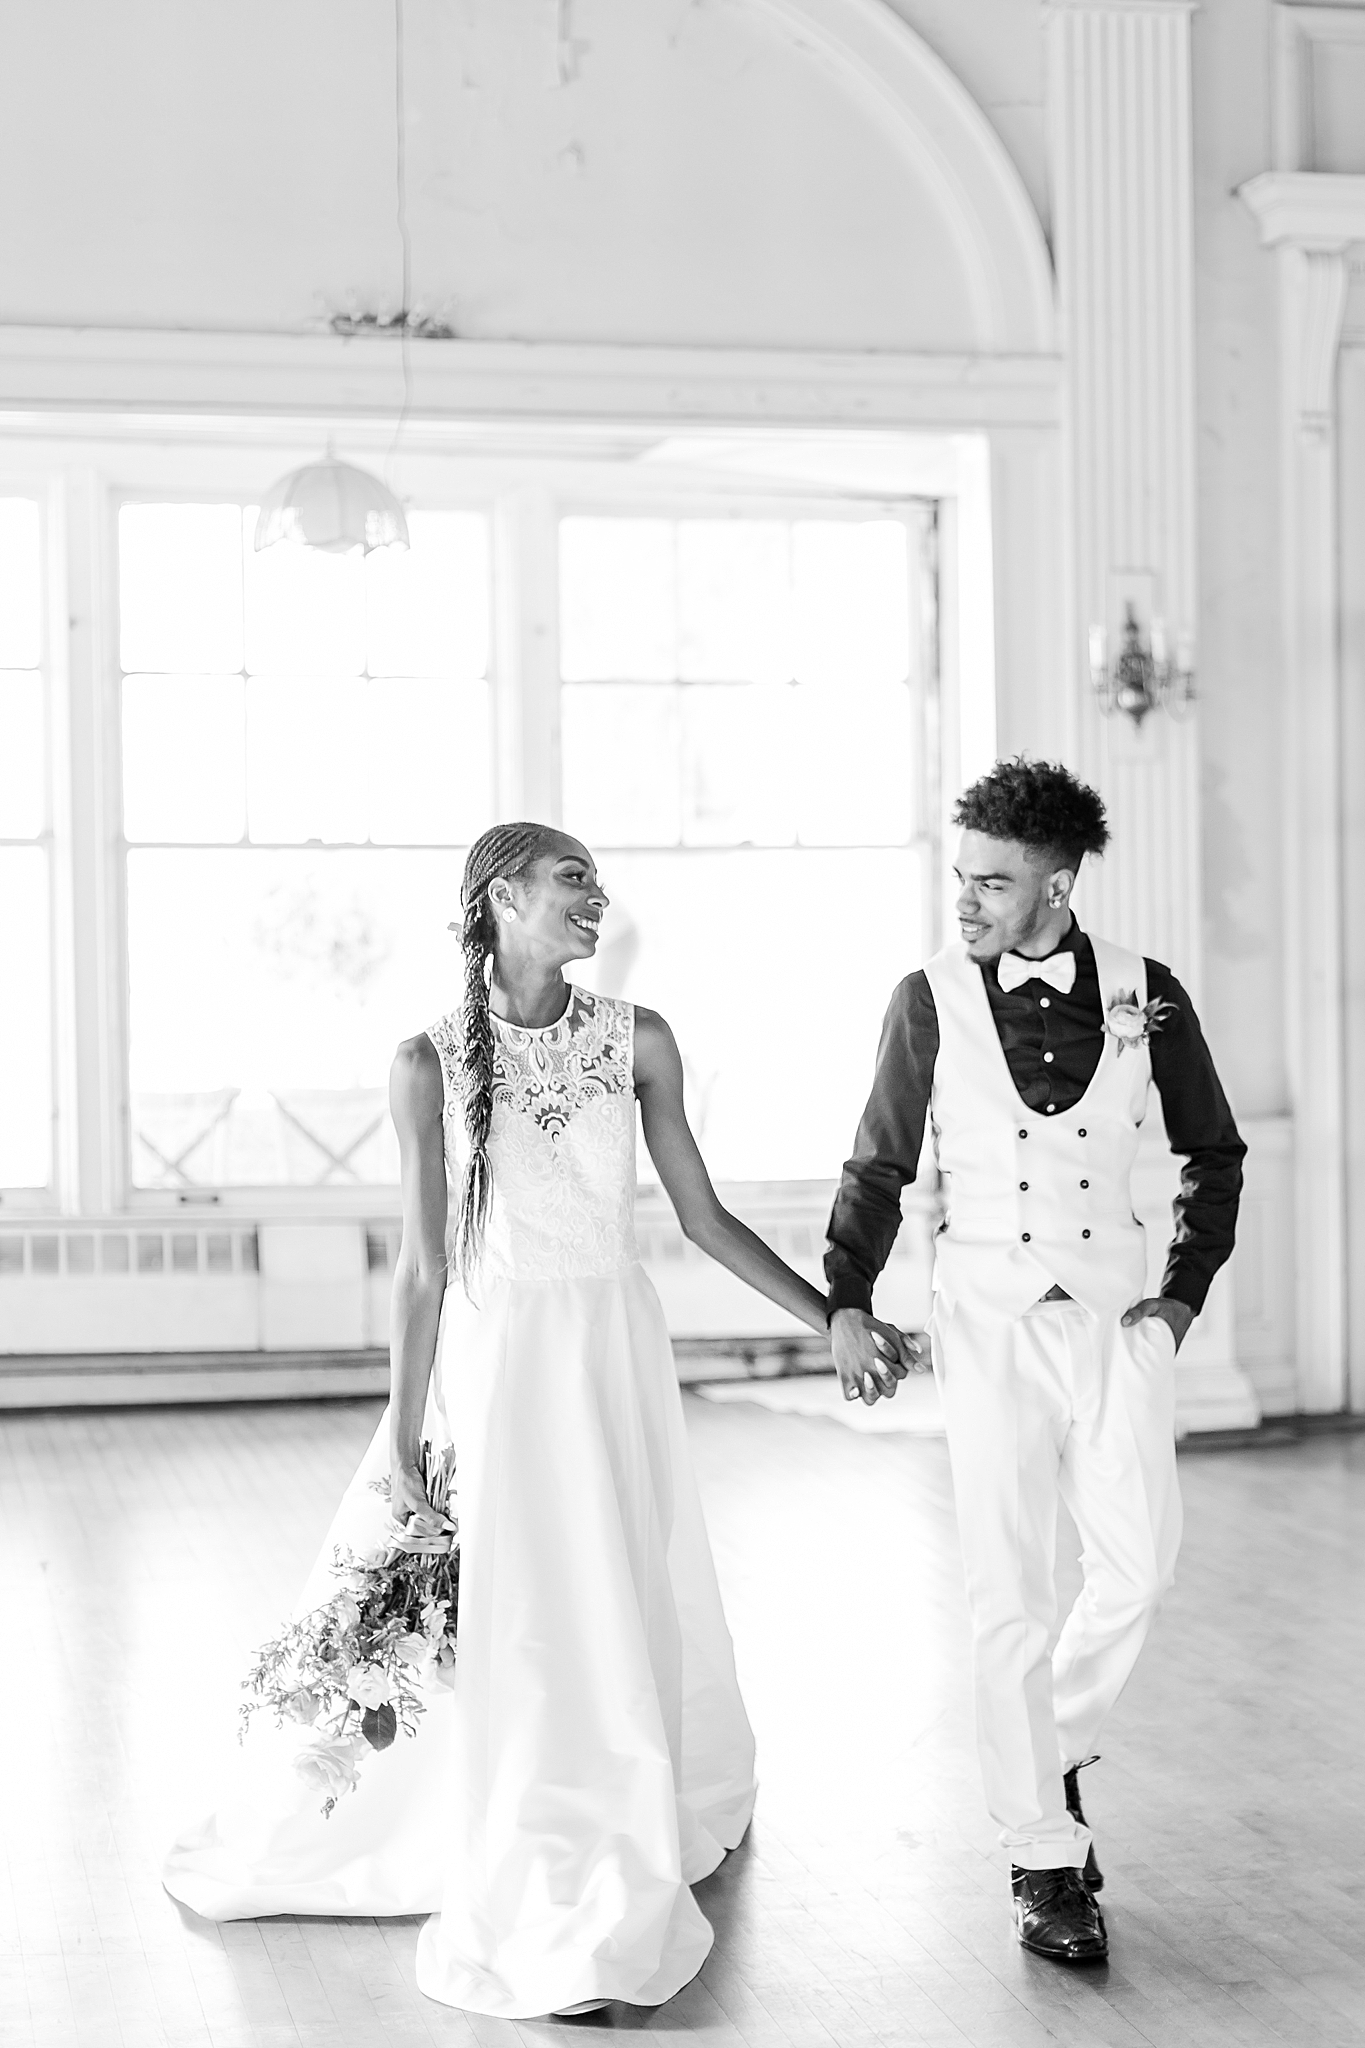 intimate-elopement-wedding-photography-at-belle-isle-boat-house-detroit-michigan-by-courtney-carolyn-photography_0014.jpg